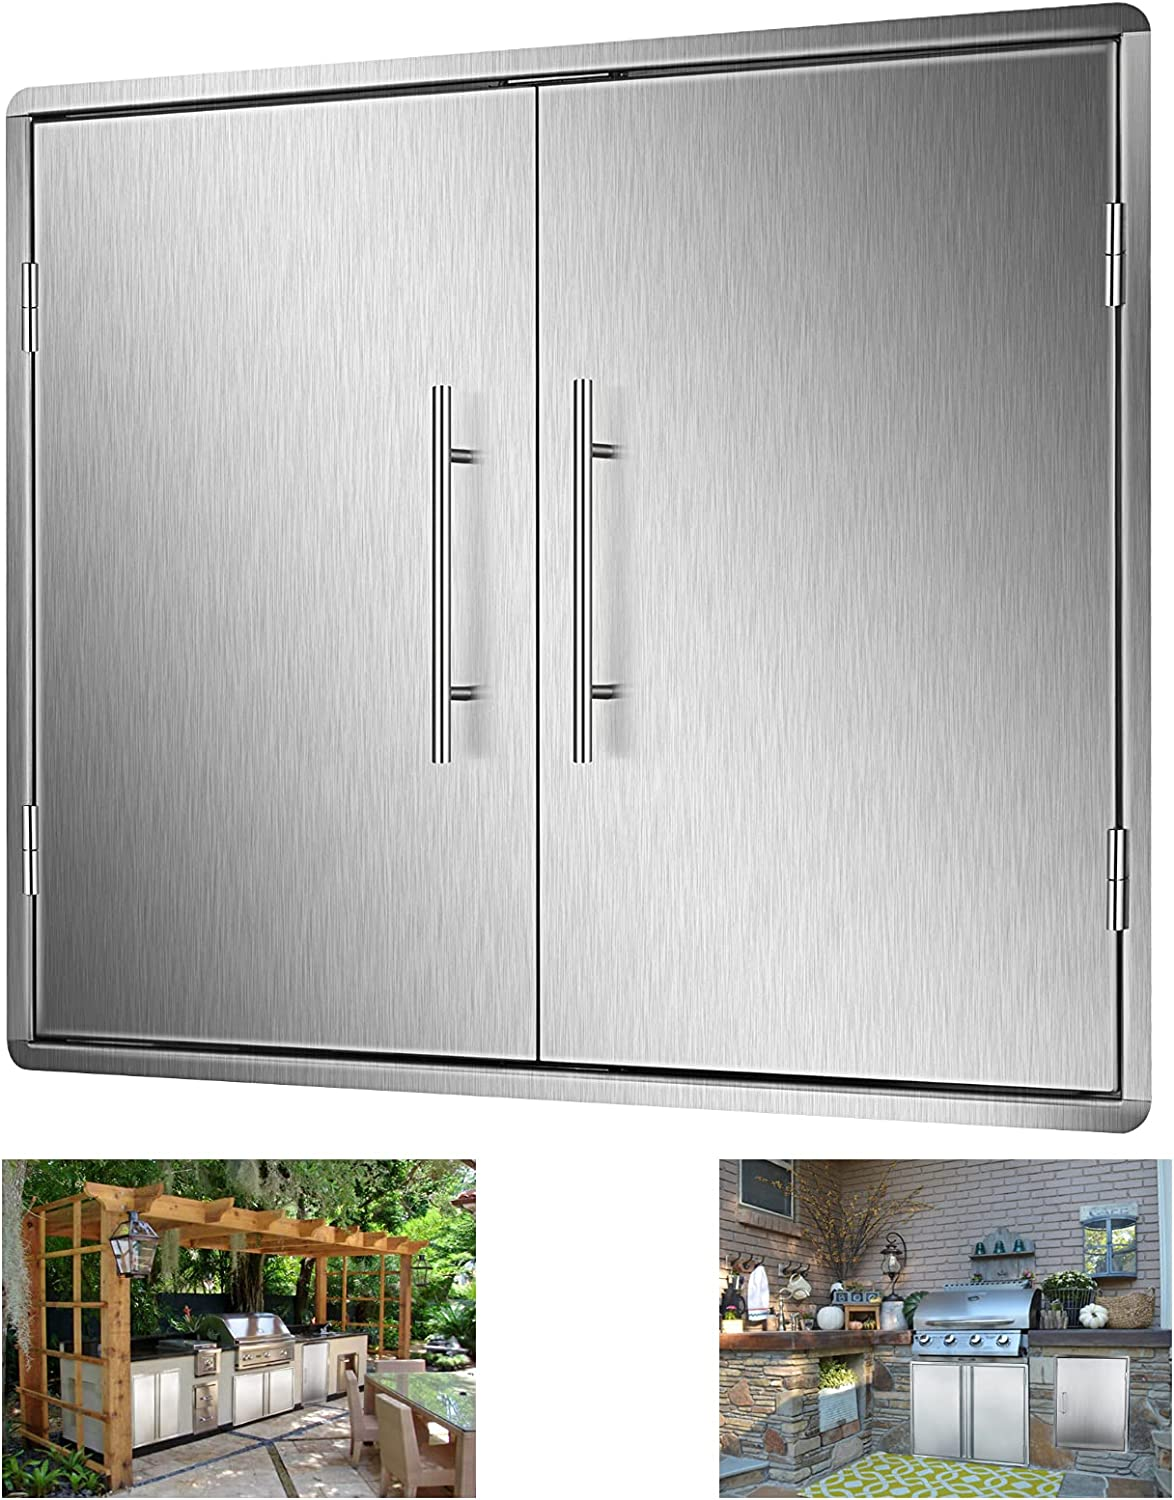 Outdoor Kitchen Challenge the lowest price Doors 30.5 X 20 BBQ Inch Access Factory outlet Steel Stainless